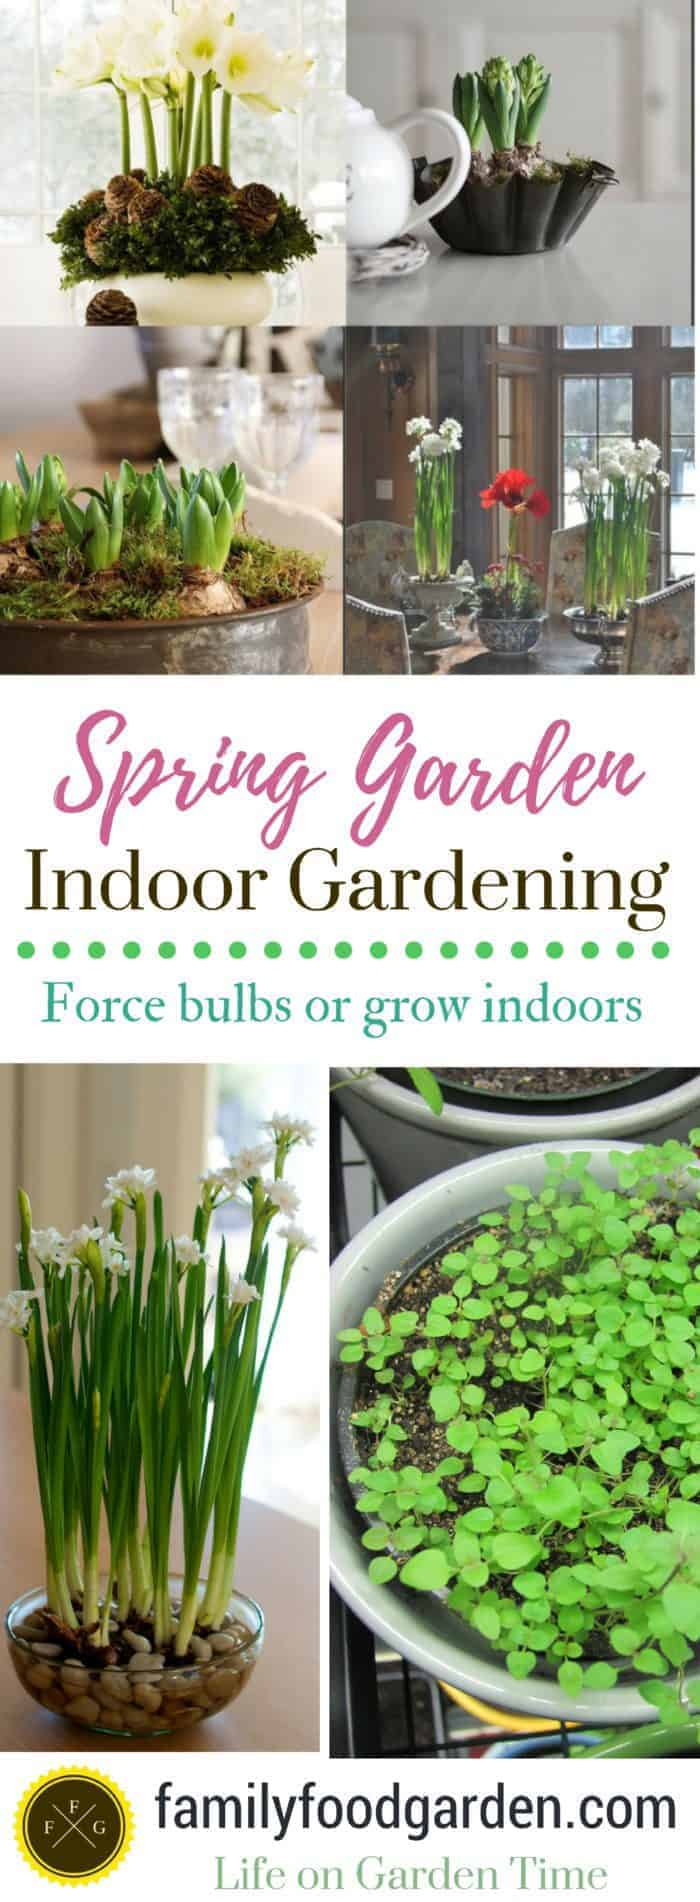 Fun spring garden projects for indoor gardening